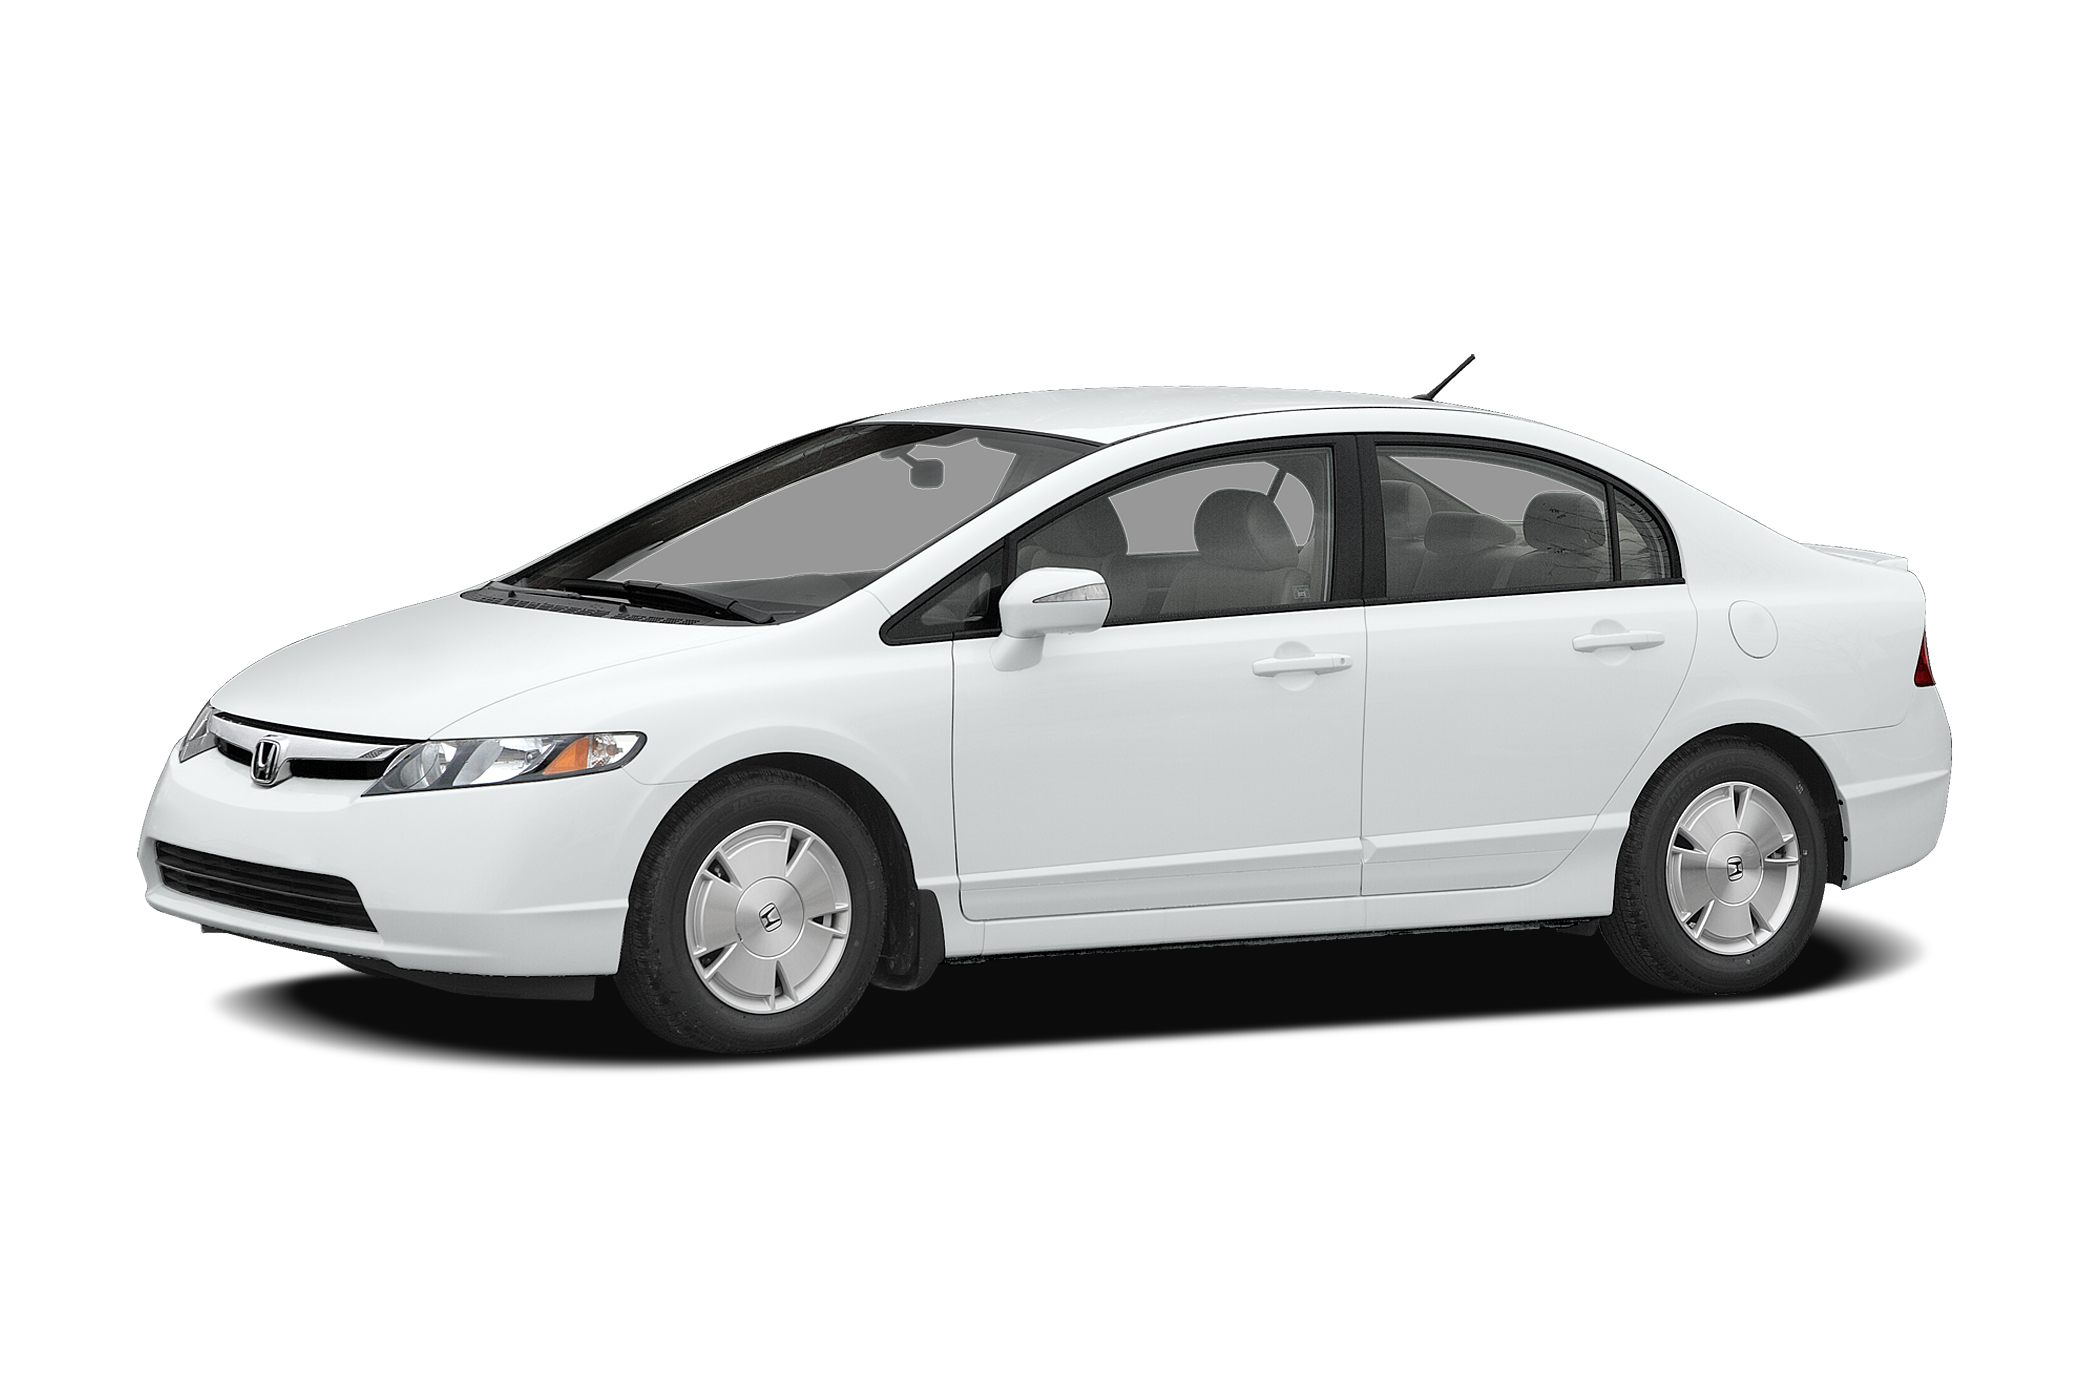 2006 Honda Civic Hybrid Base Miles 203698Color Taffeta White Stock 023643 VIN JHMFA36256S023